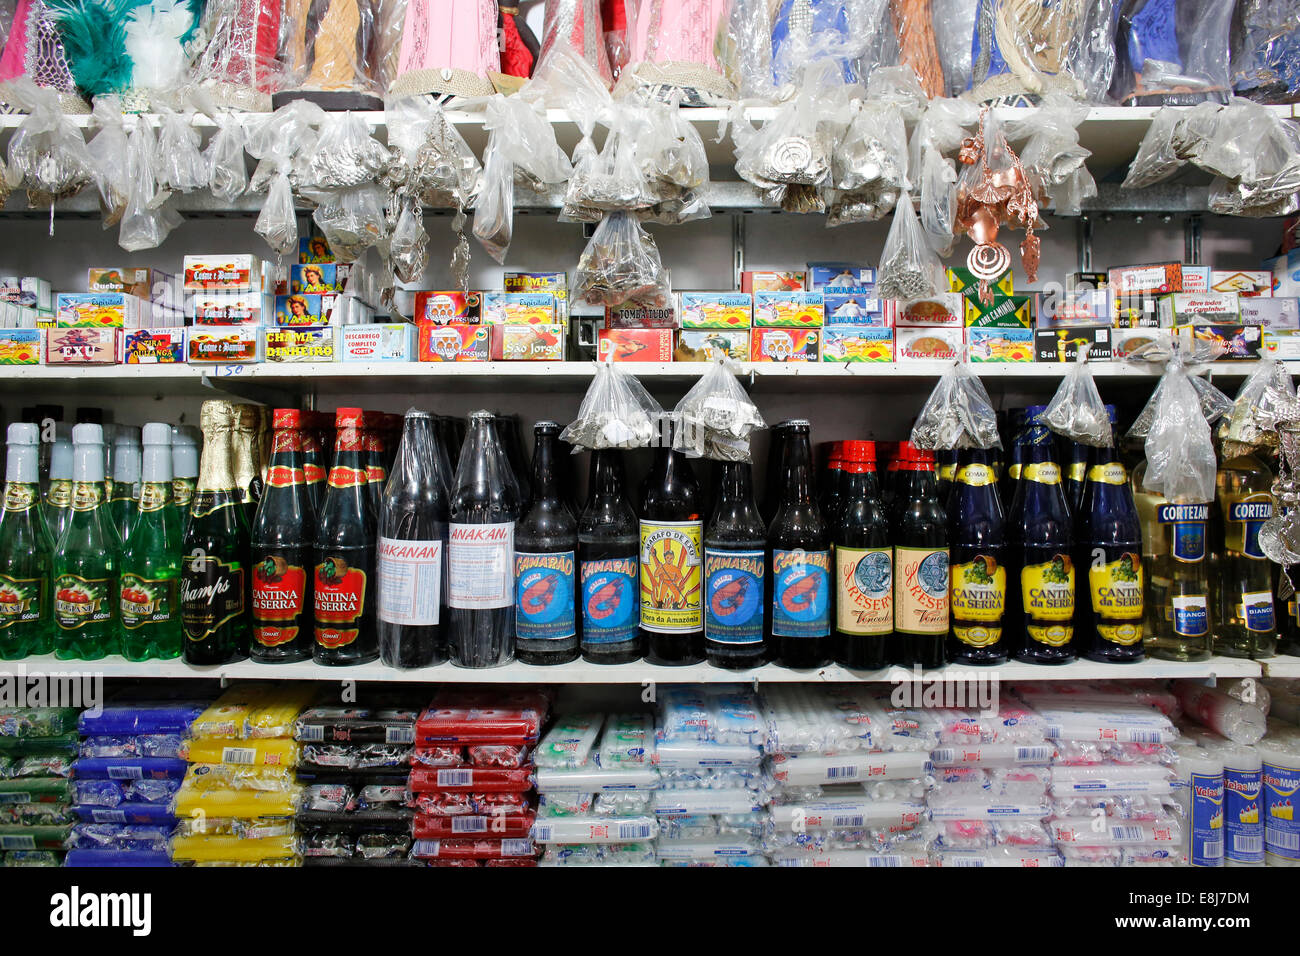 CandomblŽ (Afro-Brazilian religion) shop at Sao Joaquim market - Stock Image